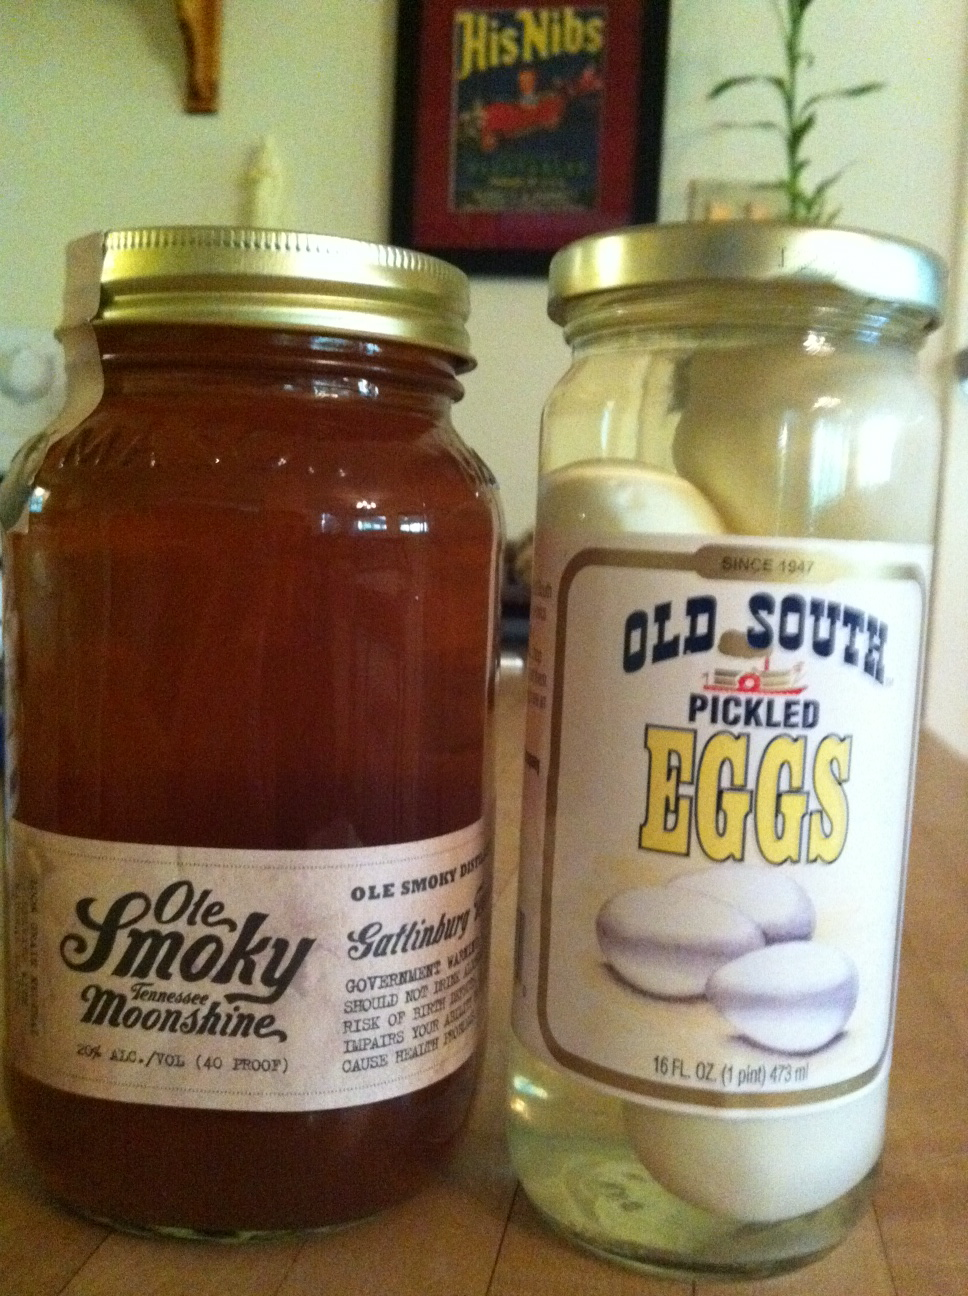 He bought the Ole Smoky moonshine at Spec's, and I picked up the Old South ...